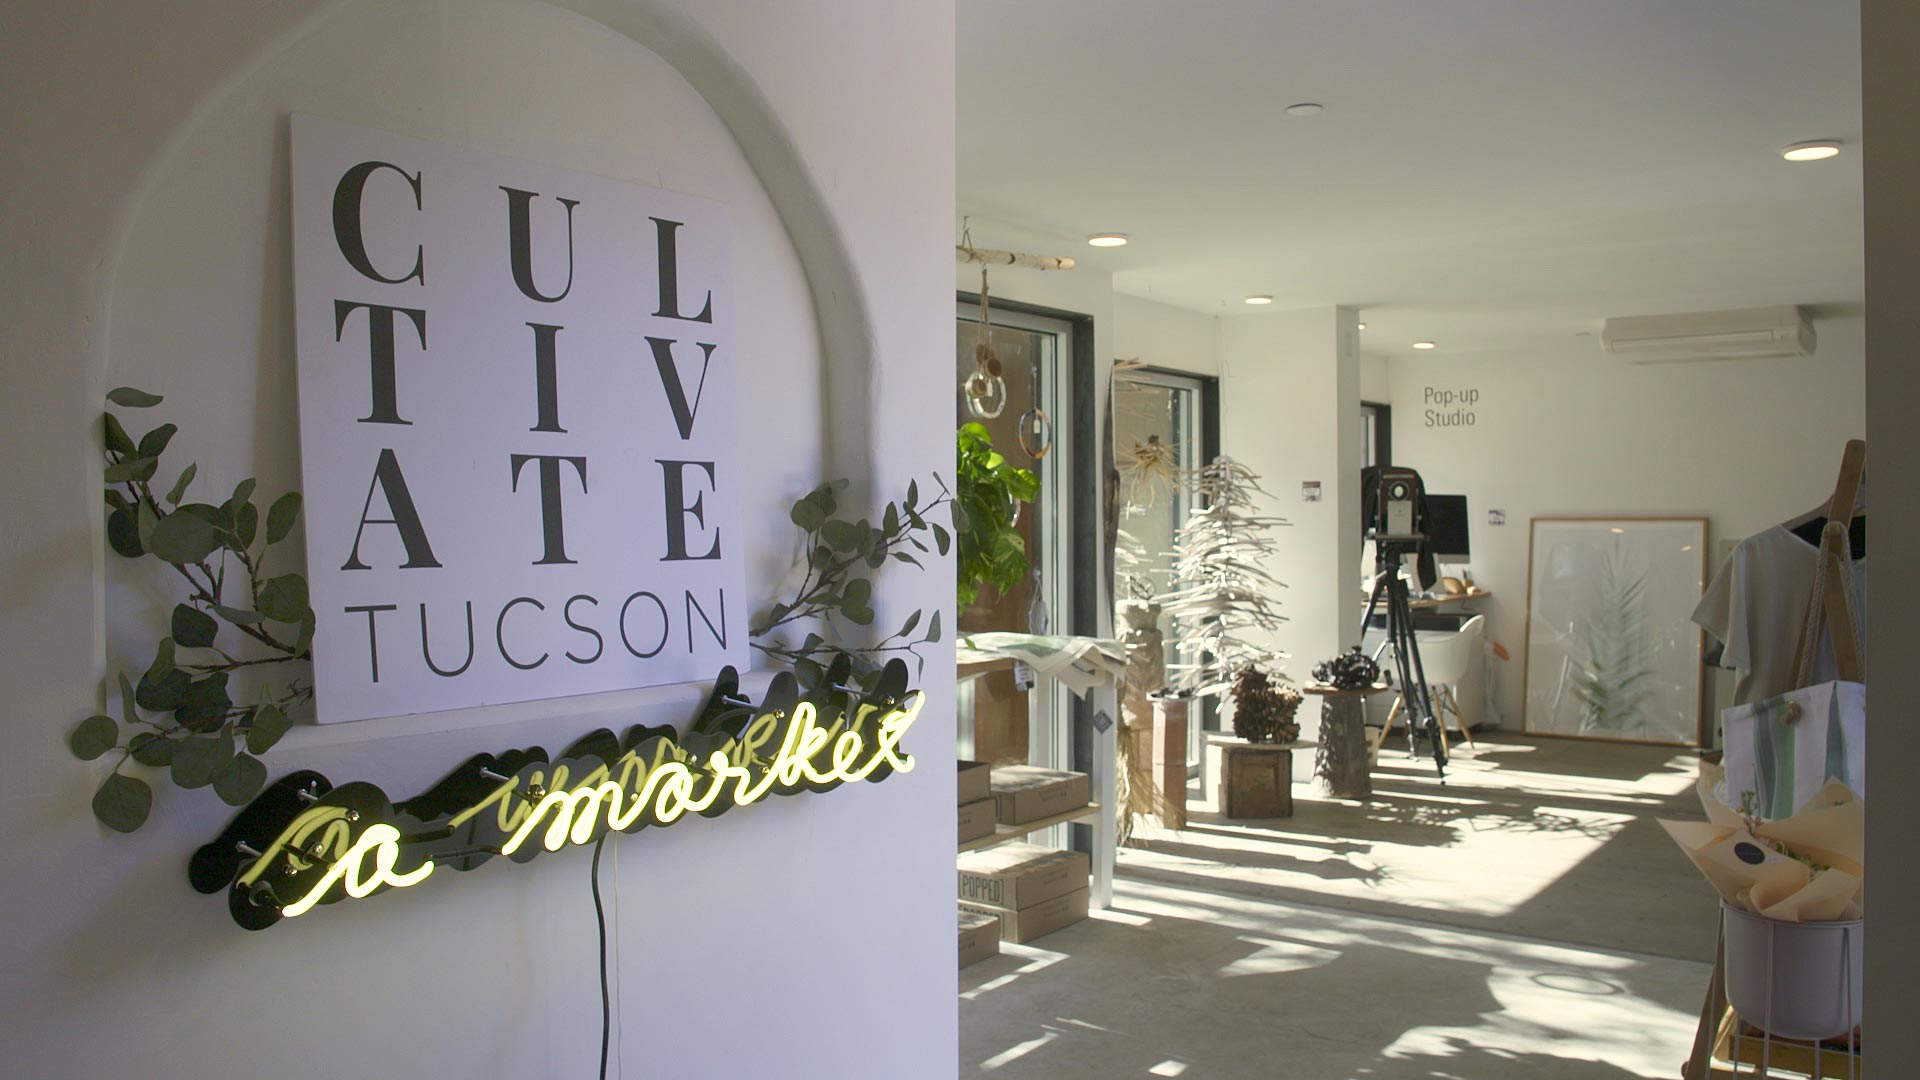 The pop-up marketplace CULTIVATE Tucson at the MSA Annex on Dec. 1, 2020.